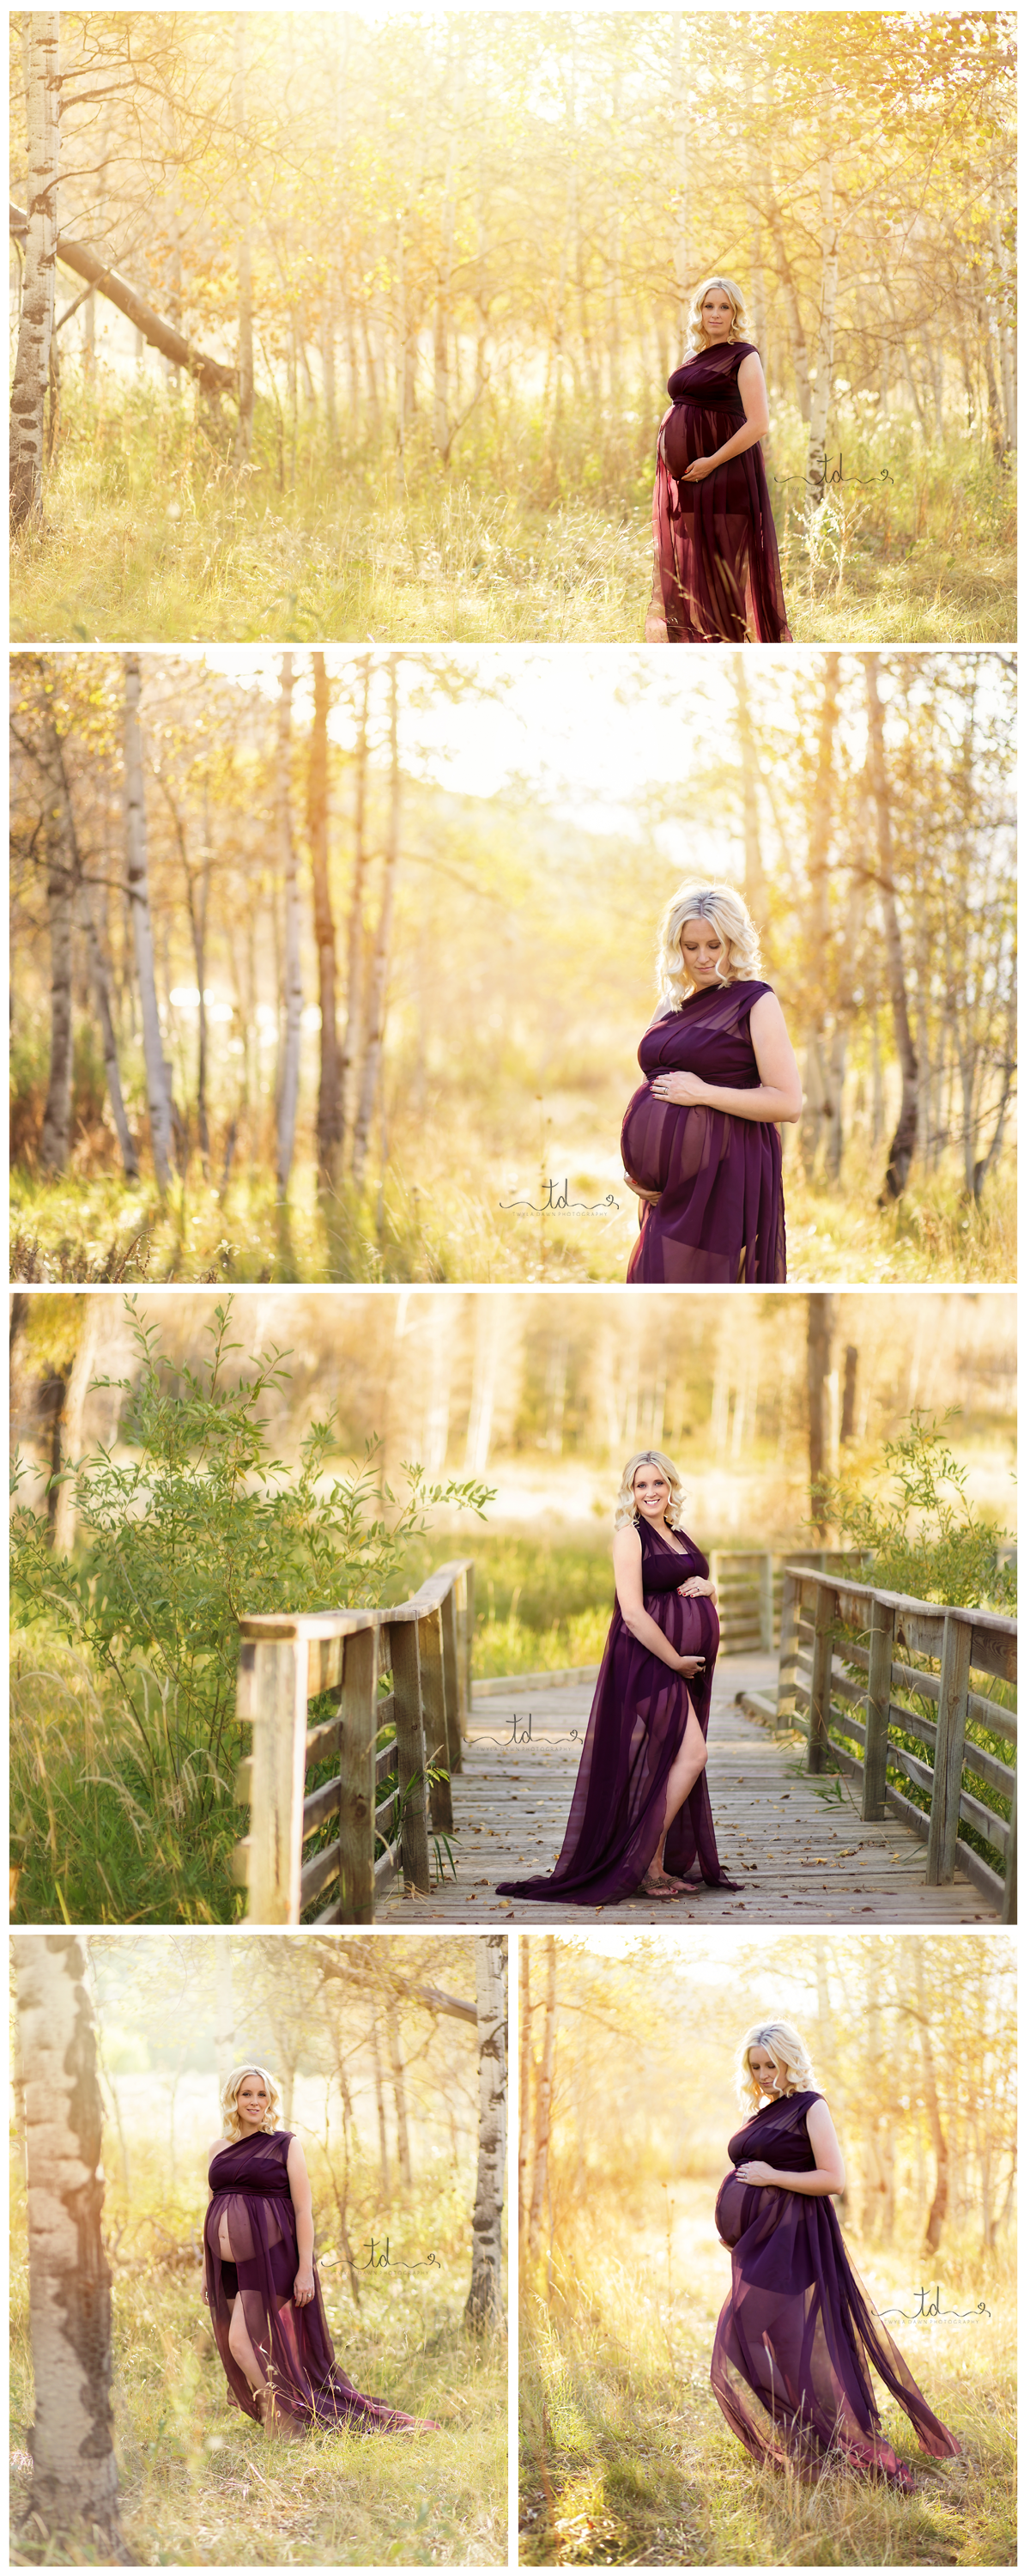 Heber Park City Utah Maternity Photographer Golden hour Session